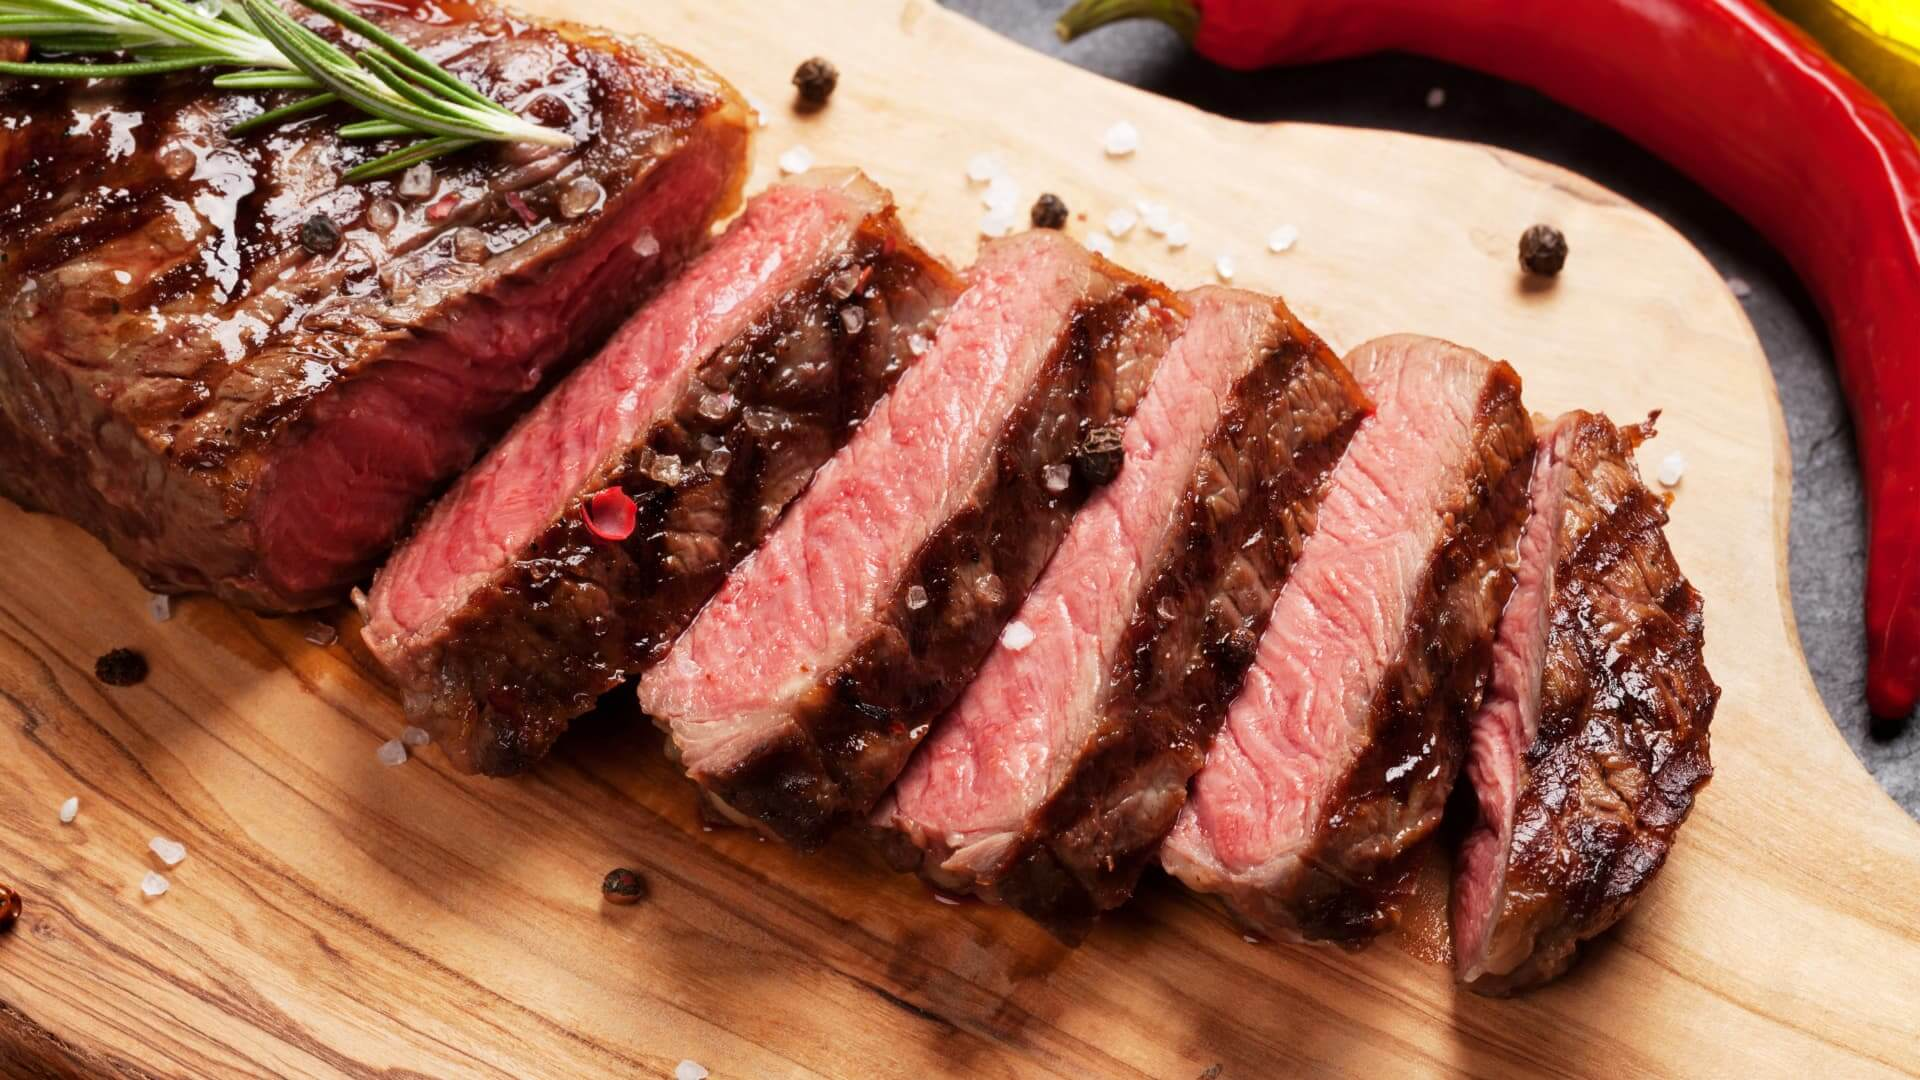 How to broil a steak without a broiling pan